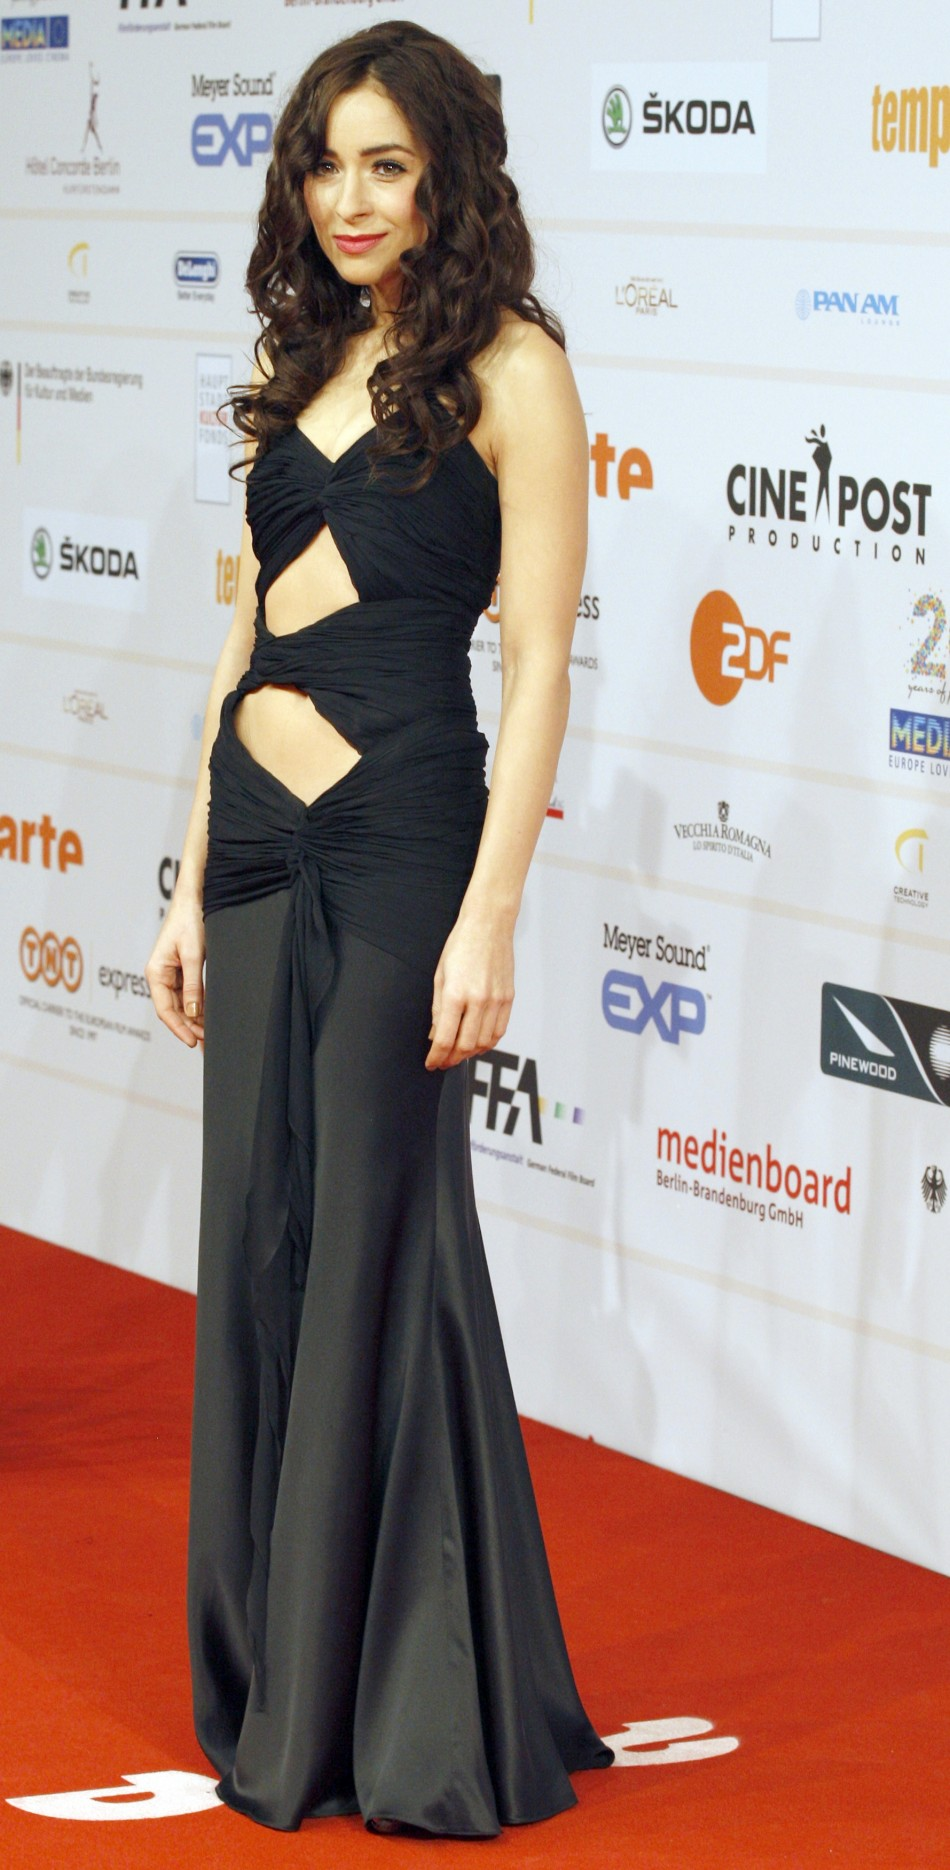 European Film Awards 2011 Winners, Celebrities and Red Carpet Arrivals